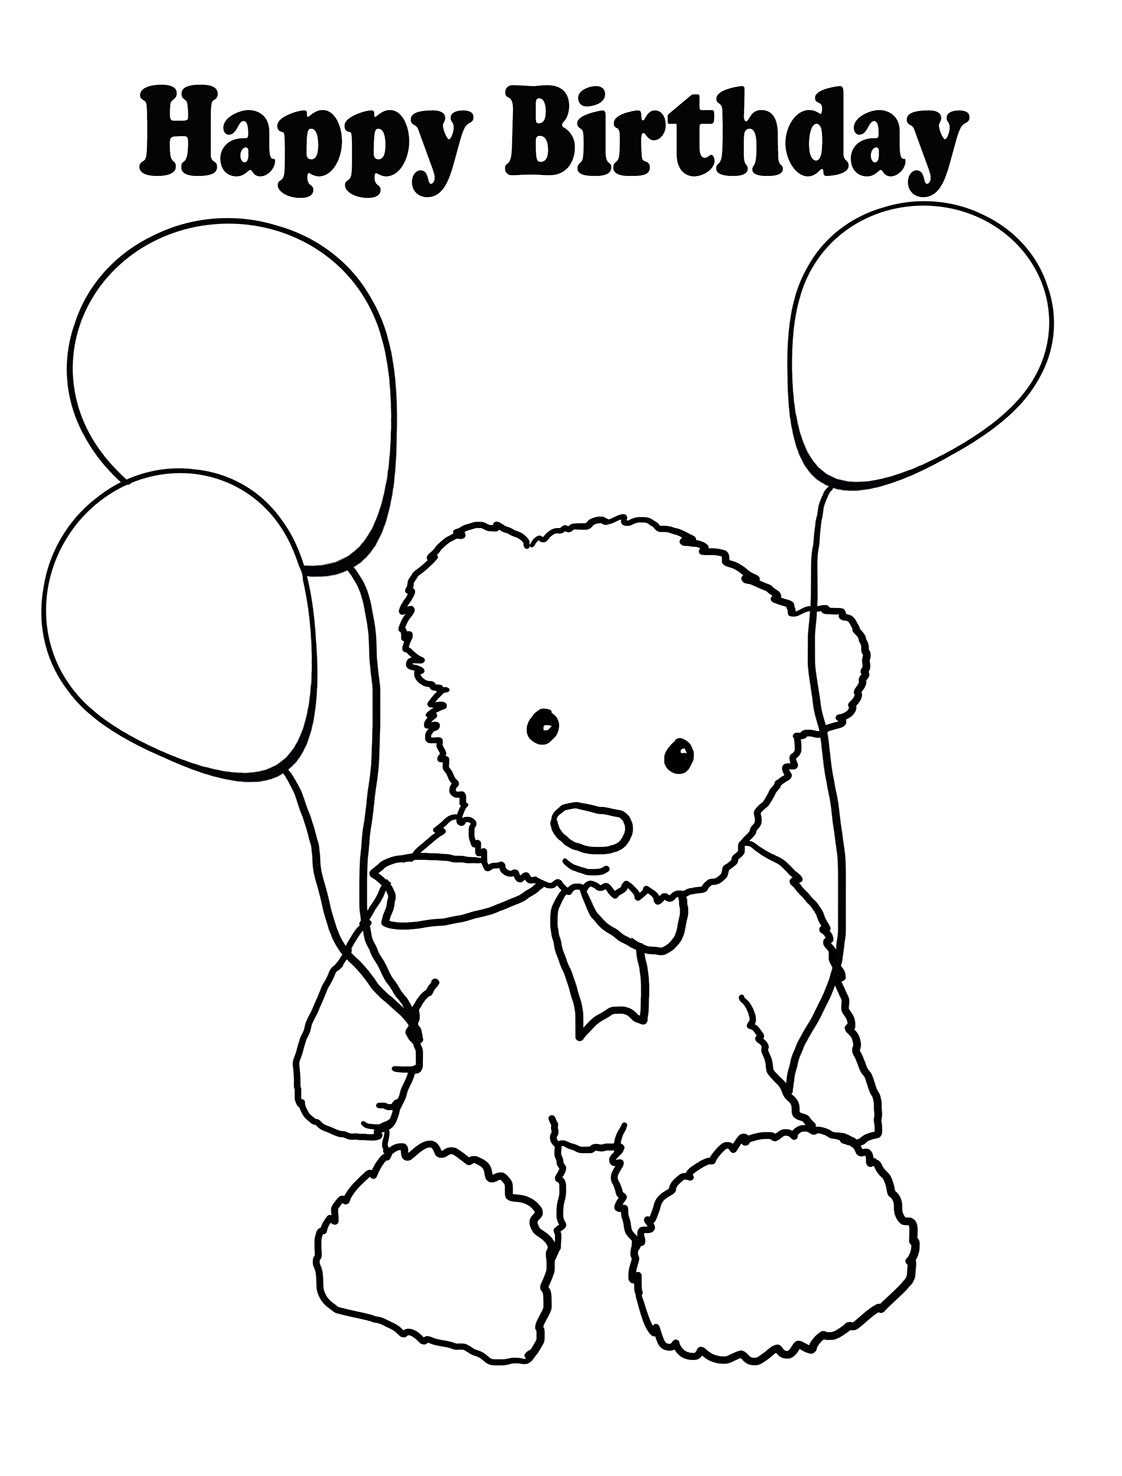 Happy Birthday Coloring Pages To Print Birthday Coloring Pages